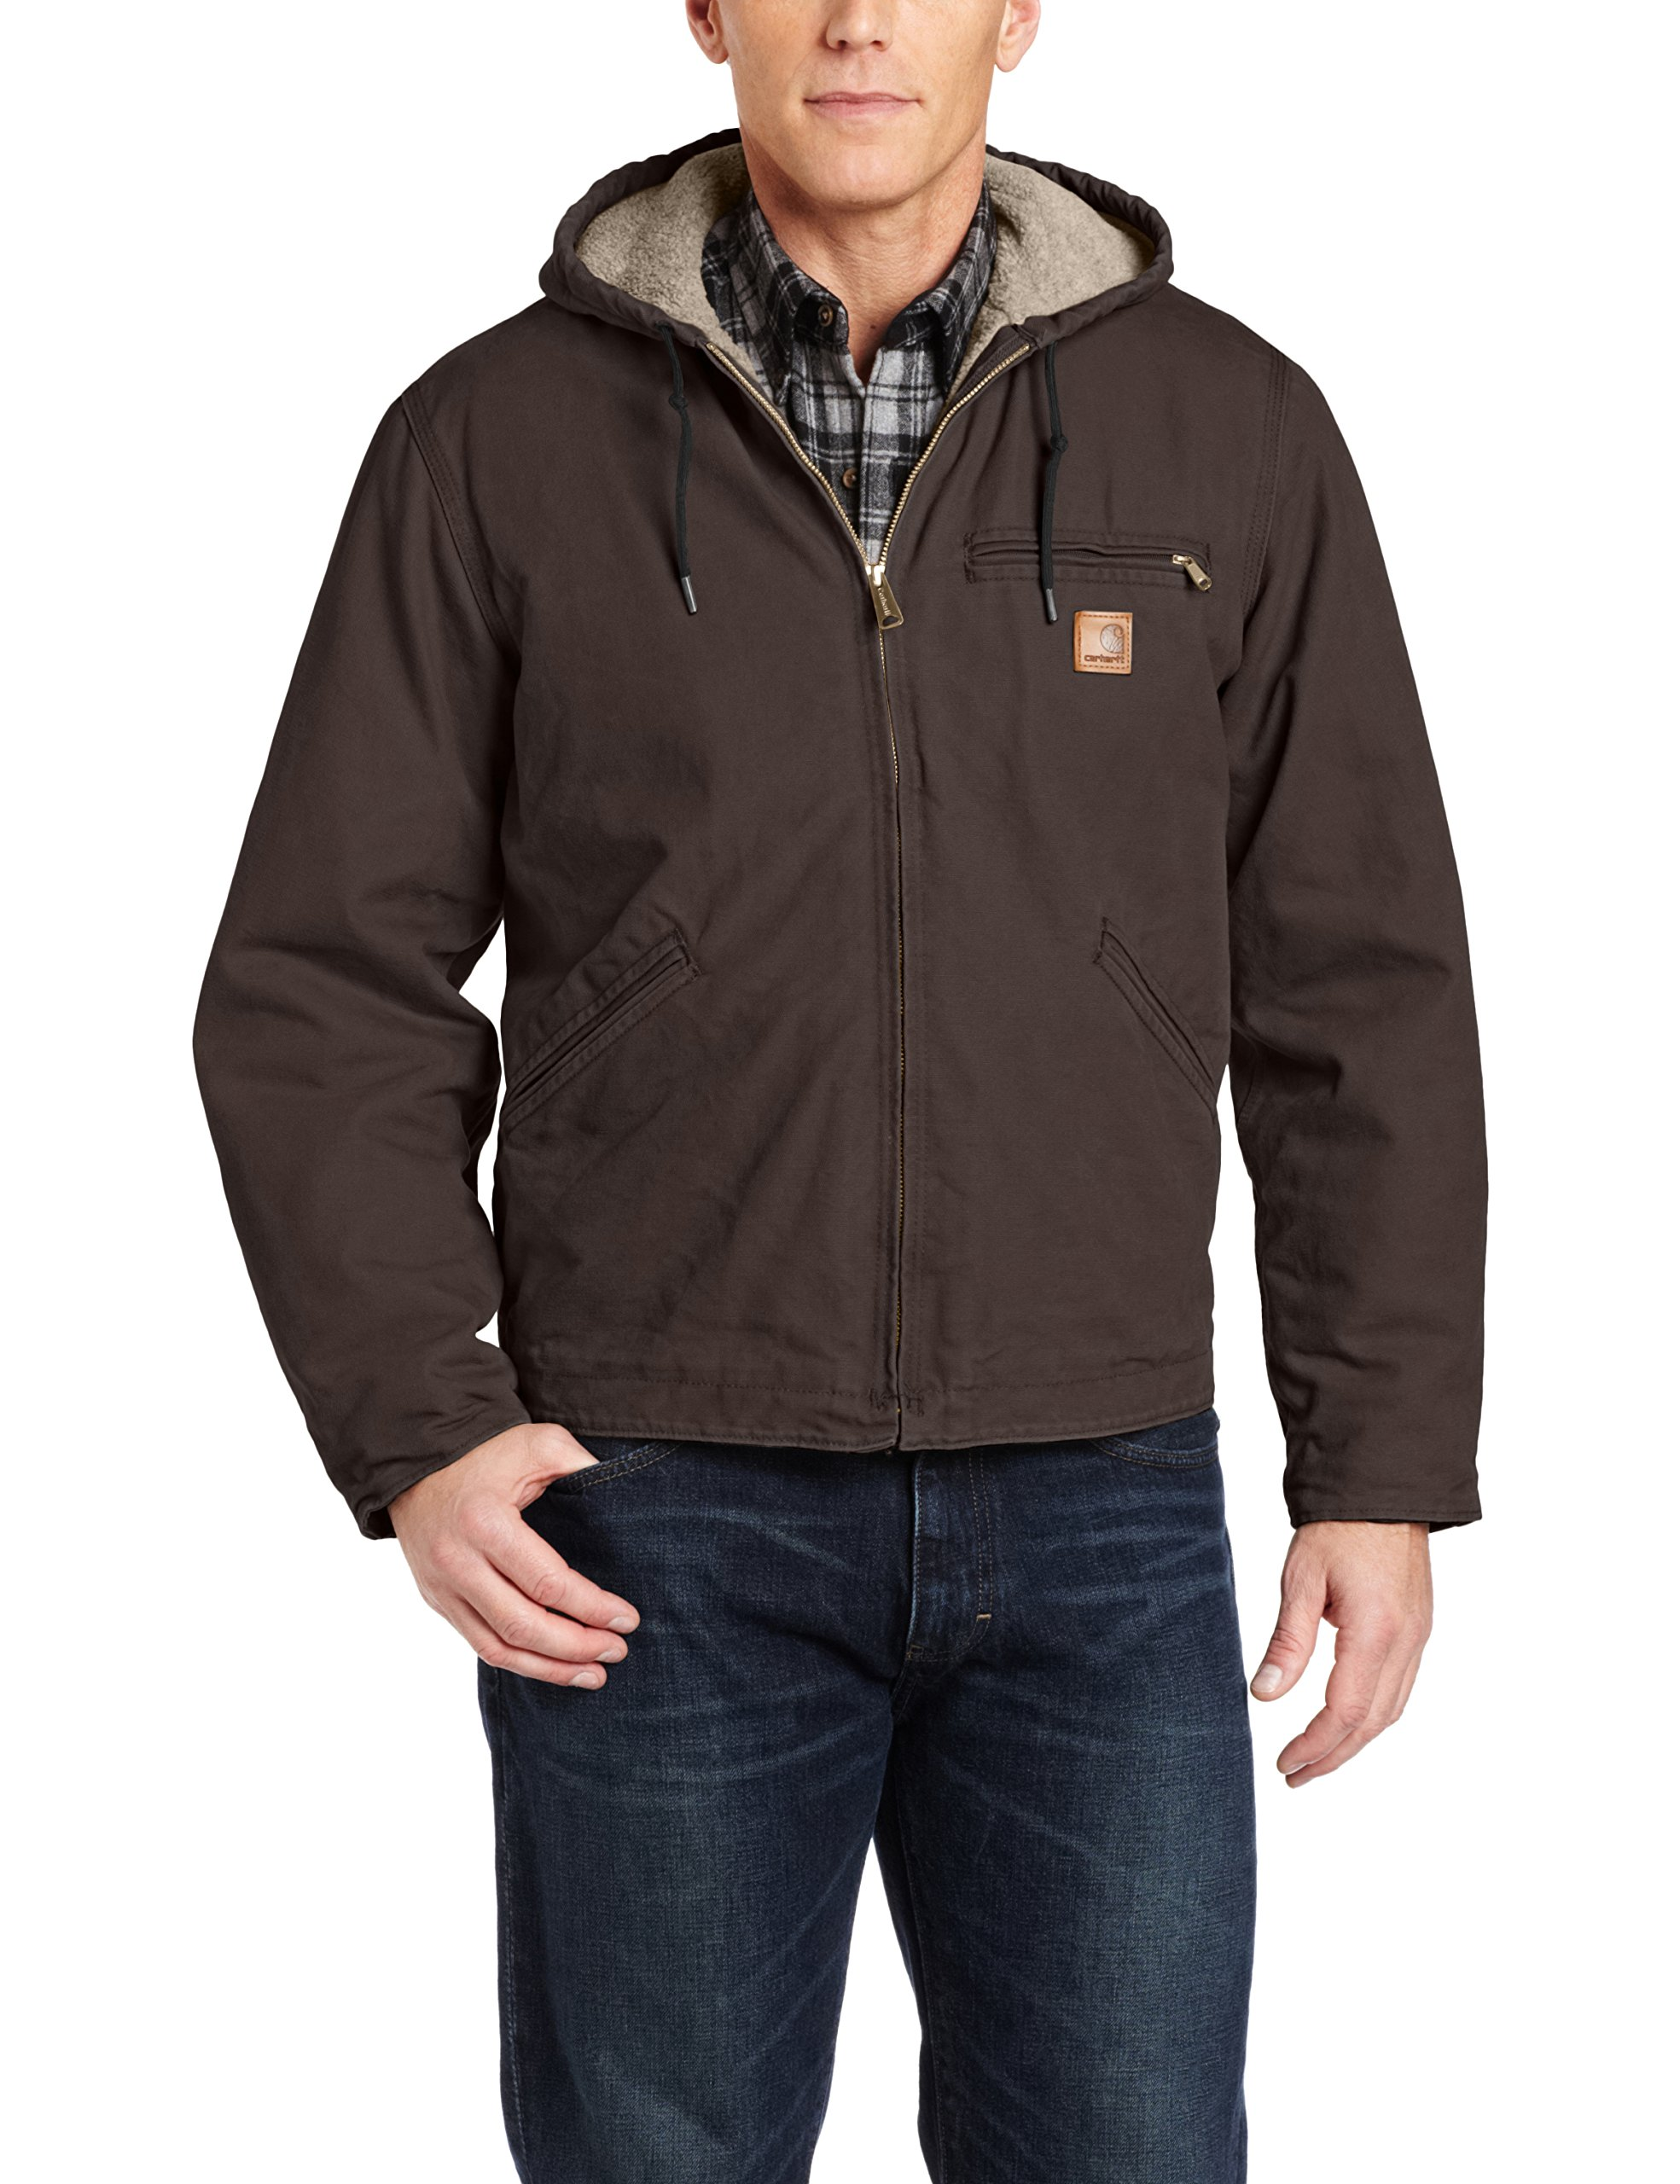 Carhartt Men's Sherpa Lined Sandstone Sierra Jacket J141,Dark Brown,Large